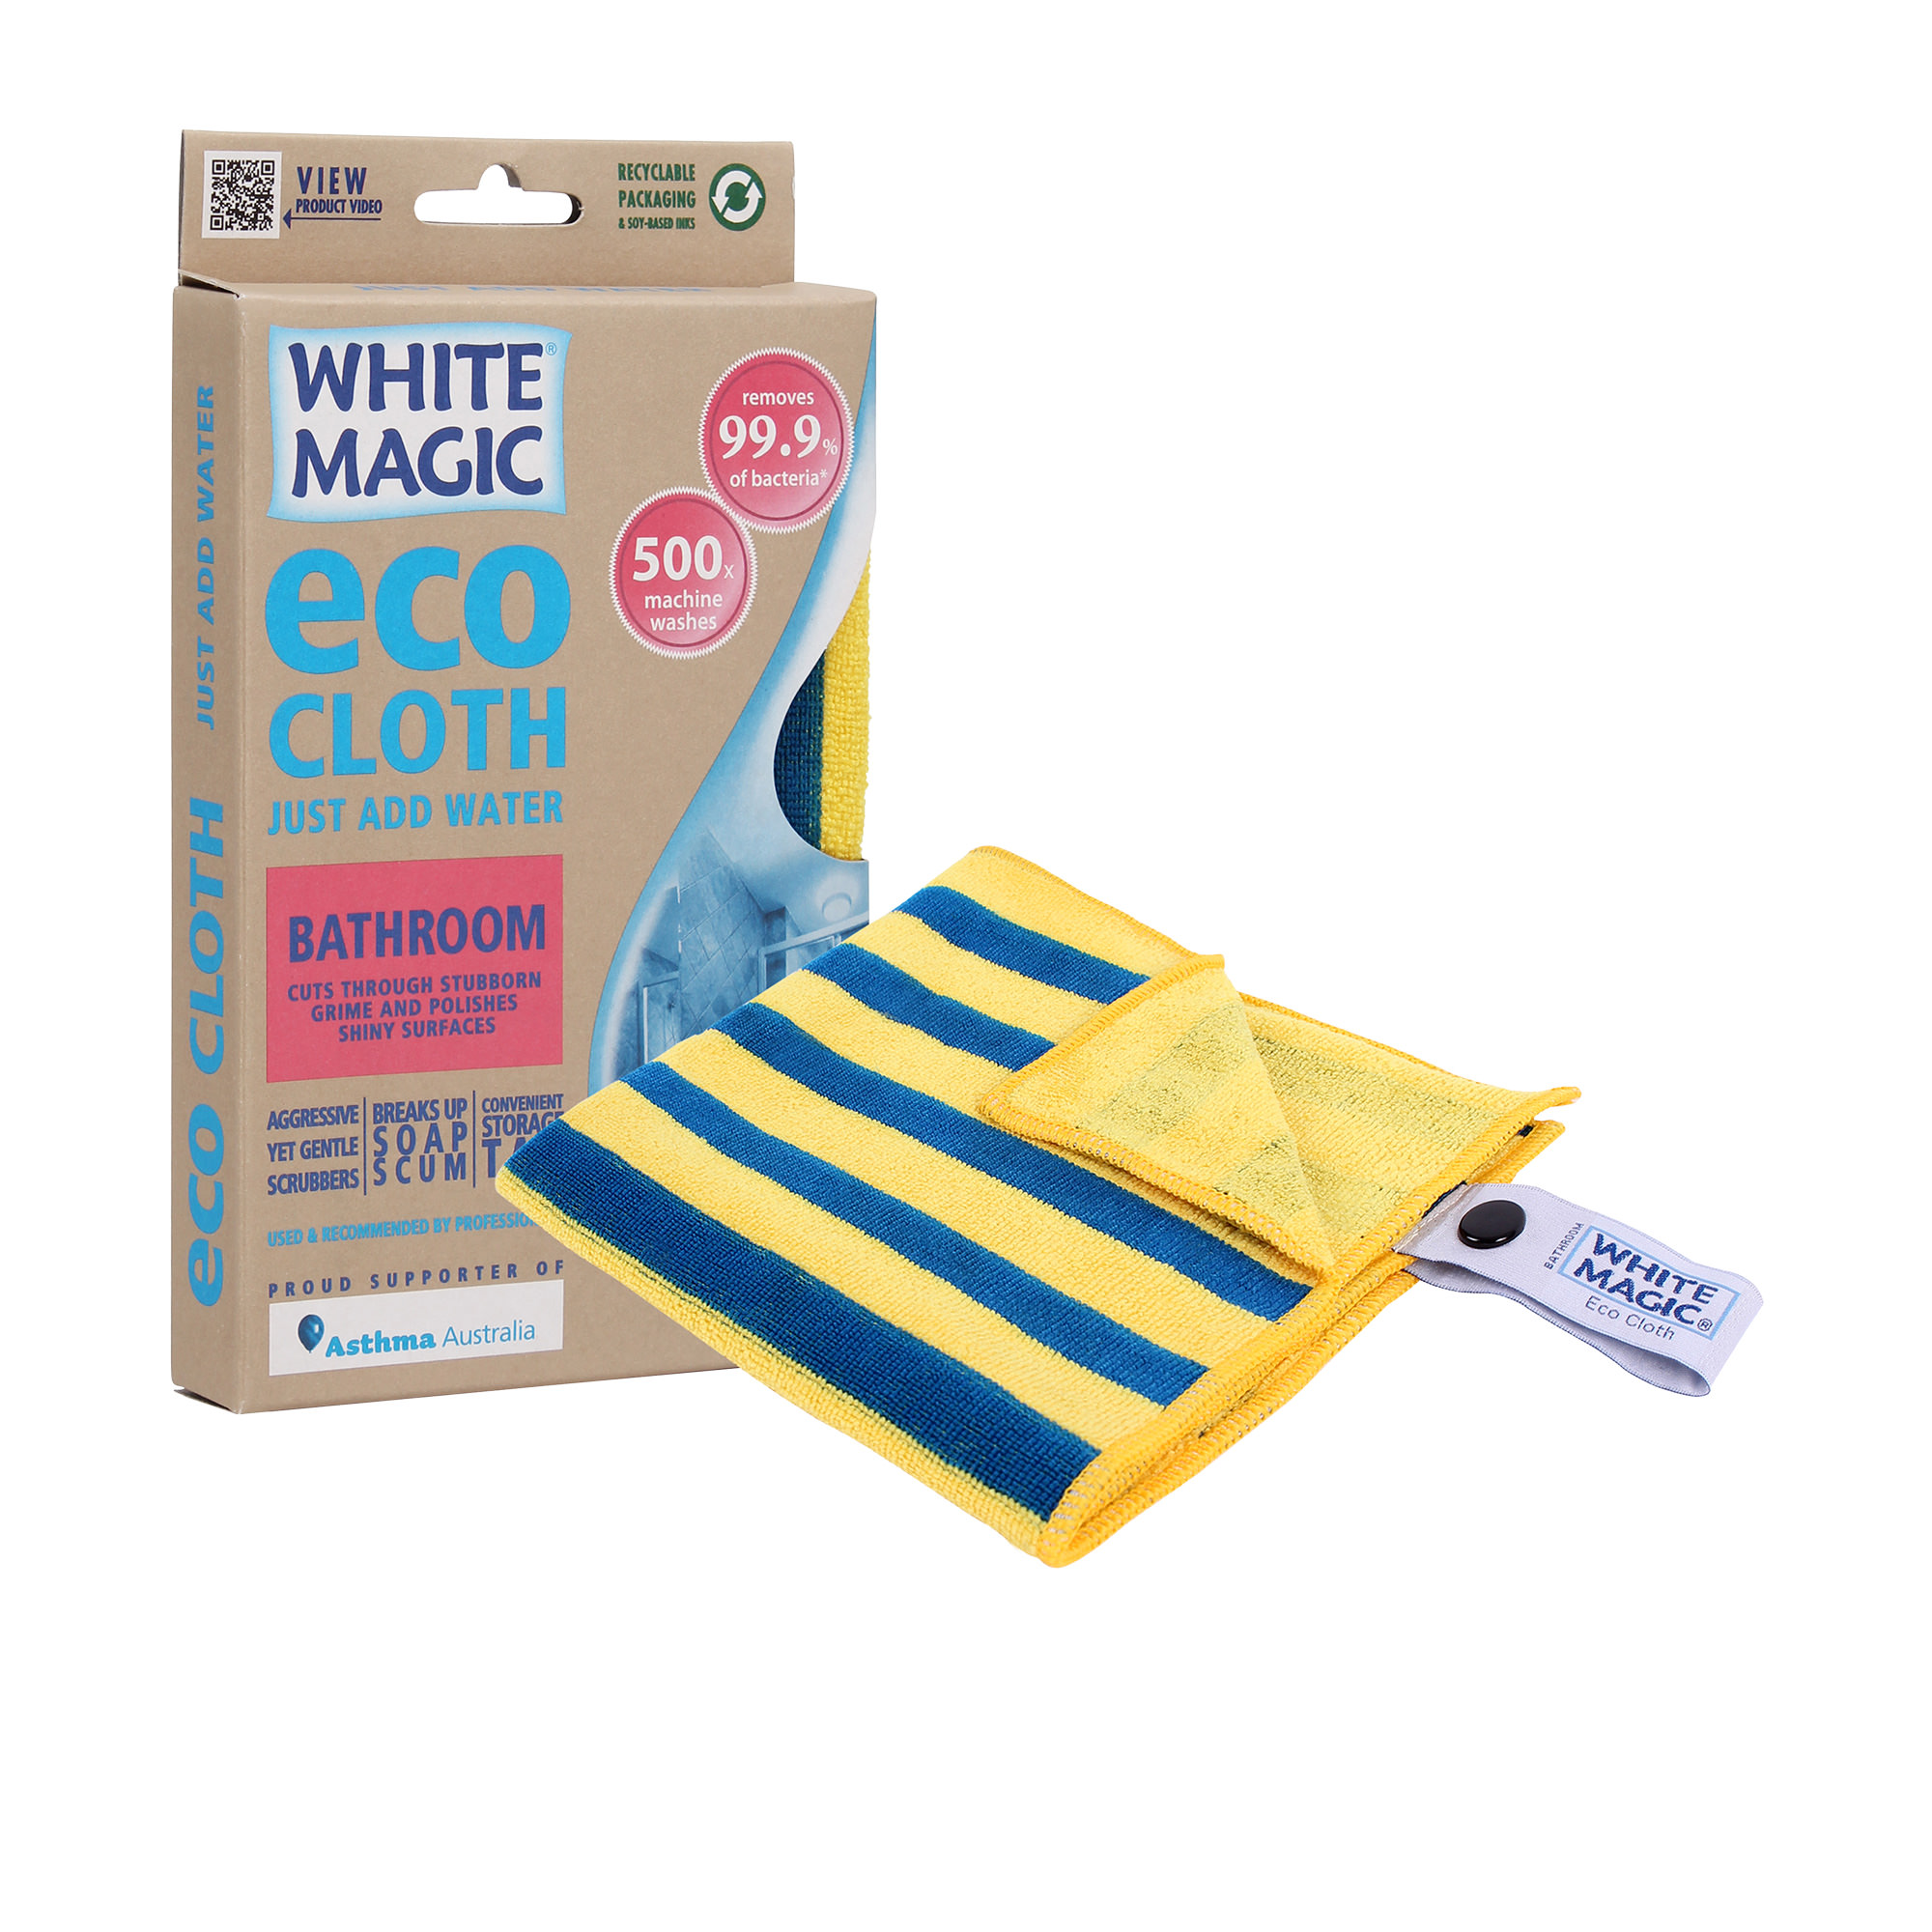 White Magic Eco Cloth Bathroom